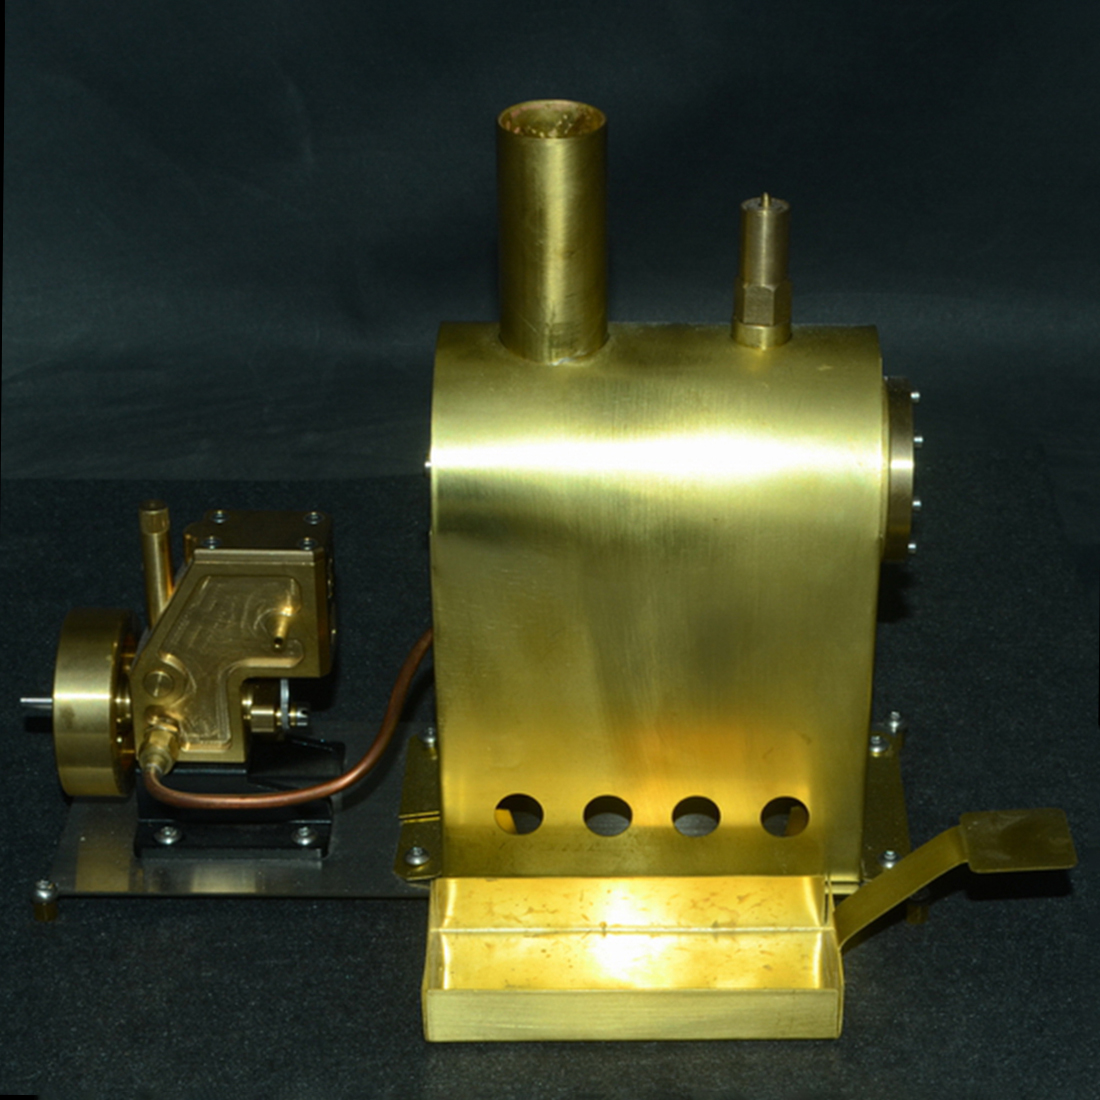 Surwish High Quality Mini Pure Copper Steam Engine Model Toy Creative Gift Set with Boiler G 1B